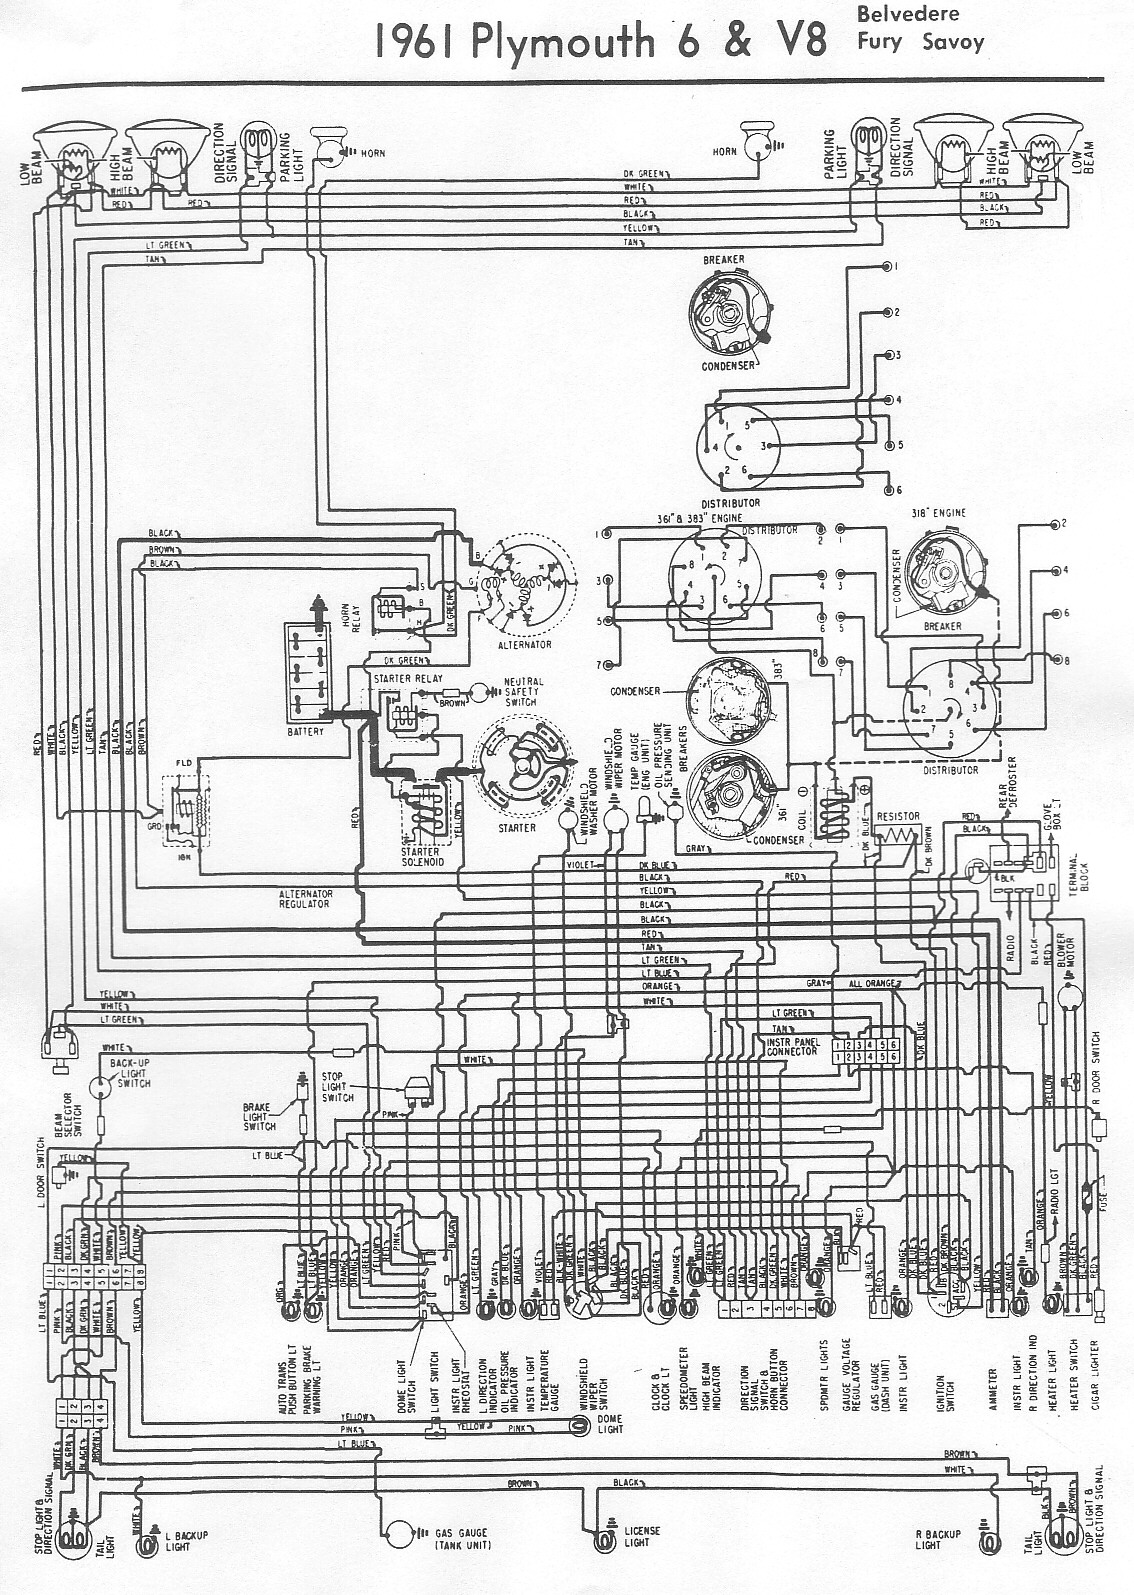 Diagram 1966 Plymouth Fury Wiring Diagram 17 Mb New Update December 17 2020 Full Version Hd Quality Wiring Diagram Wawiring Hotelcapocaccia It